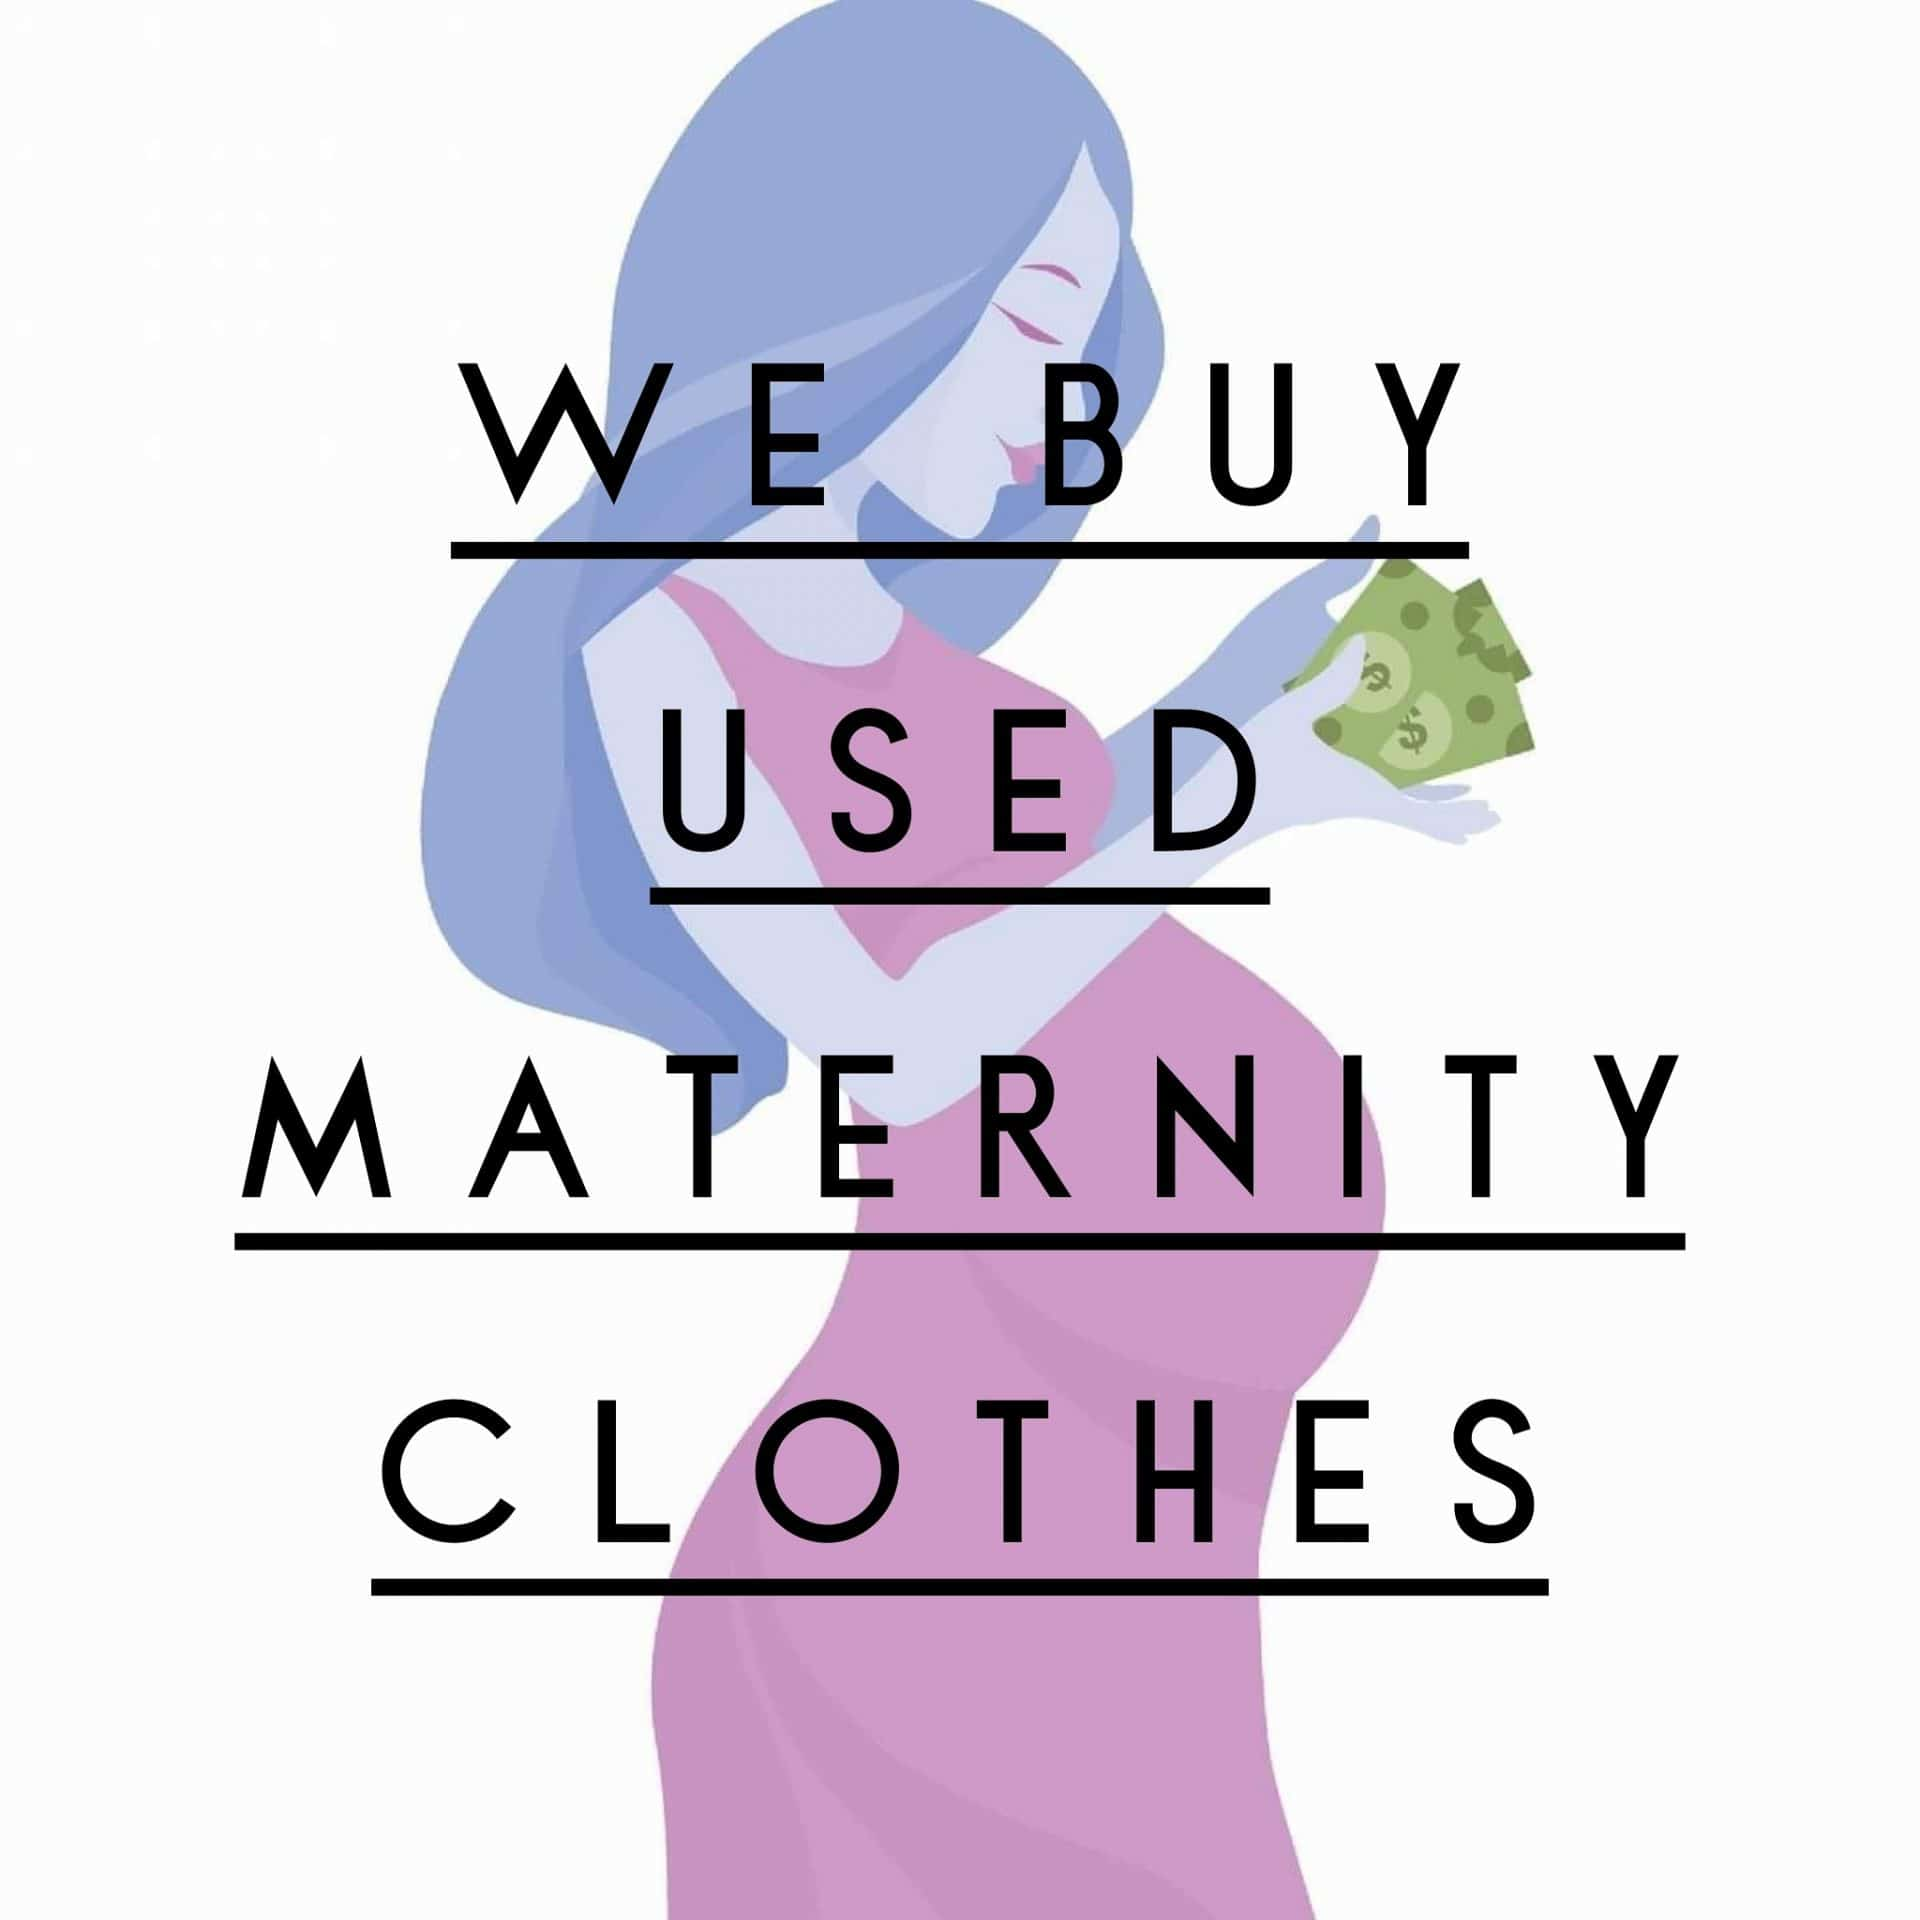 sell your maternity clothes, gently used maternity clothes, used maternity